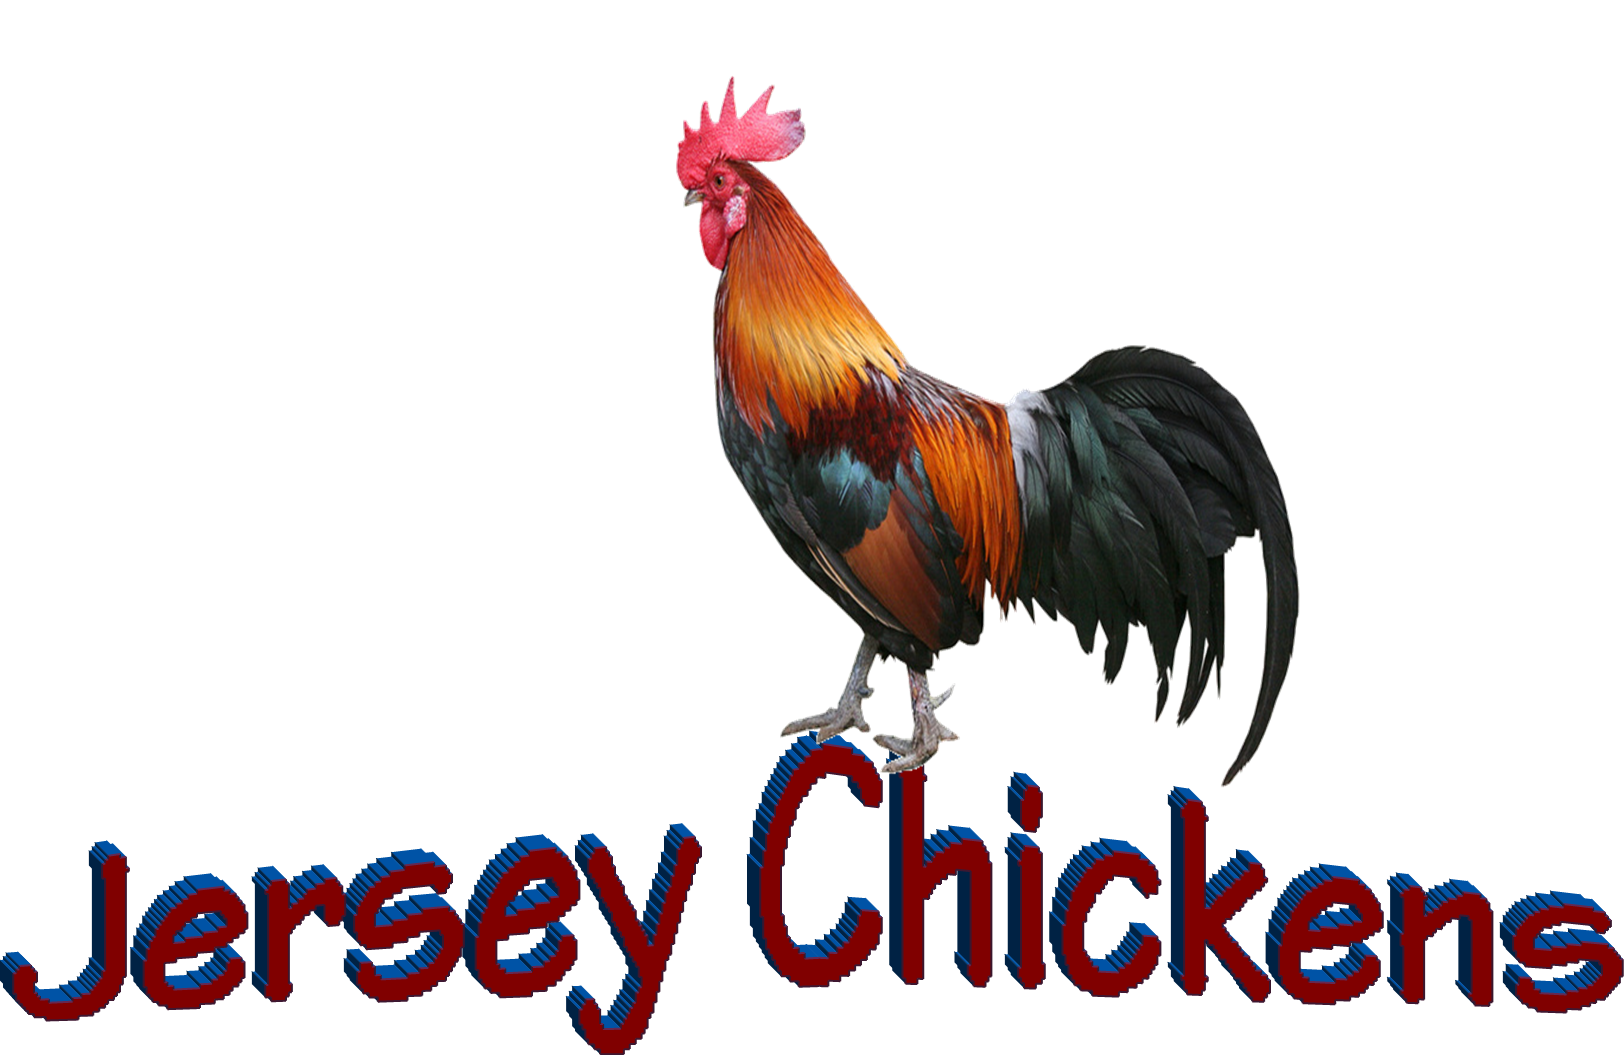 """Jersey Chickens"", where I'll be getting my first chicks this spring!"